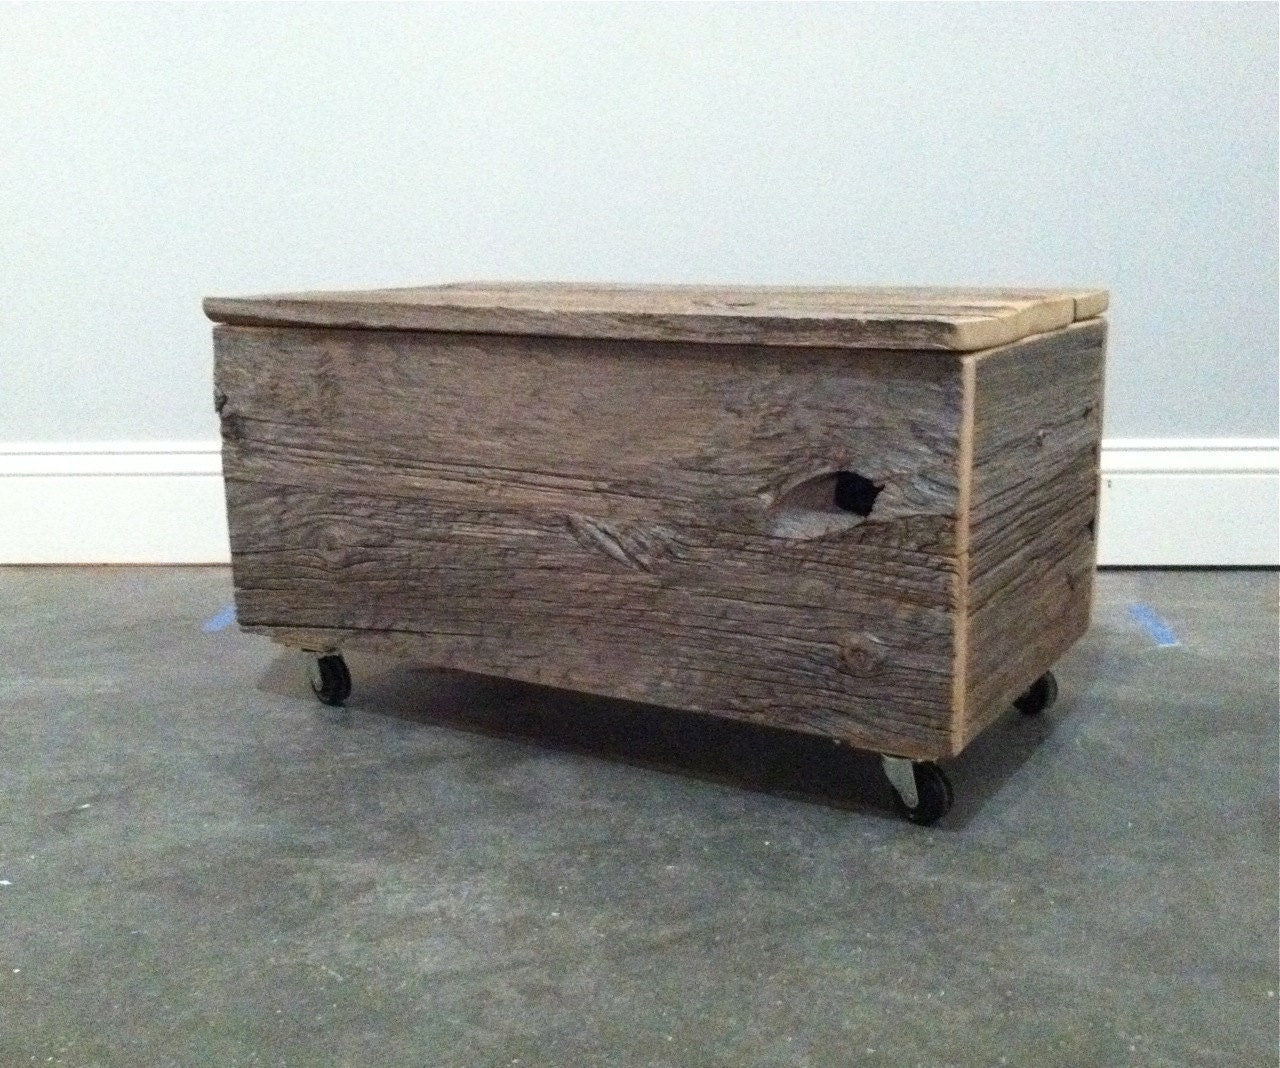 Superb img of wood trunk on wheels ottoman / coffee table/ toolbox by FORTRESSco with #4B6180 color and 1280x1068 pixels